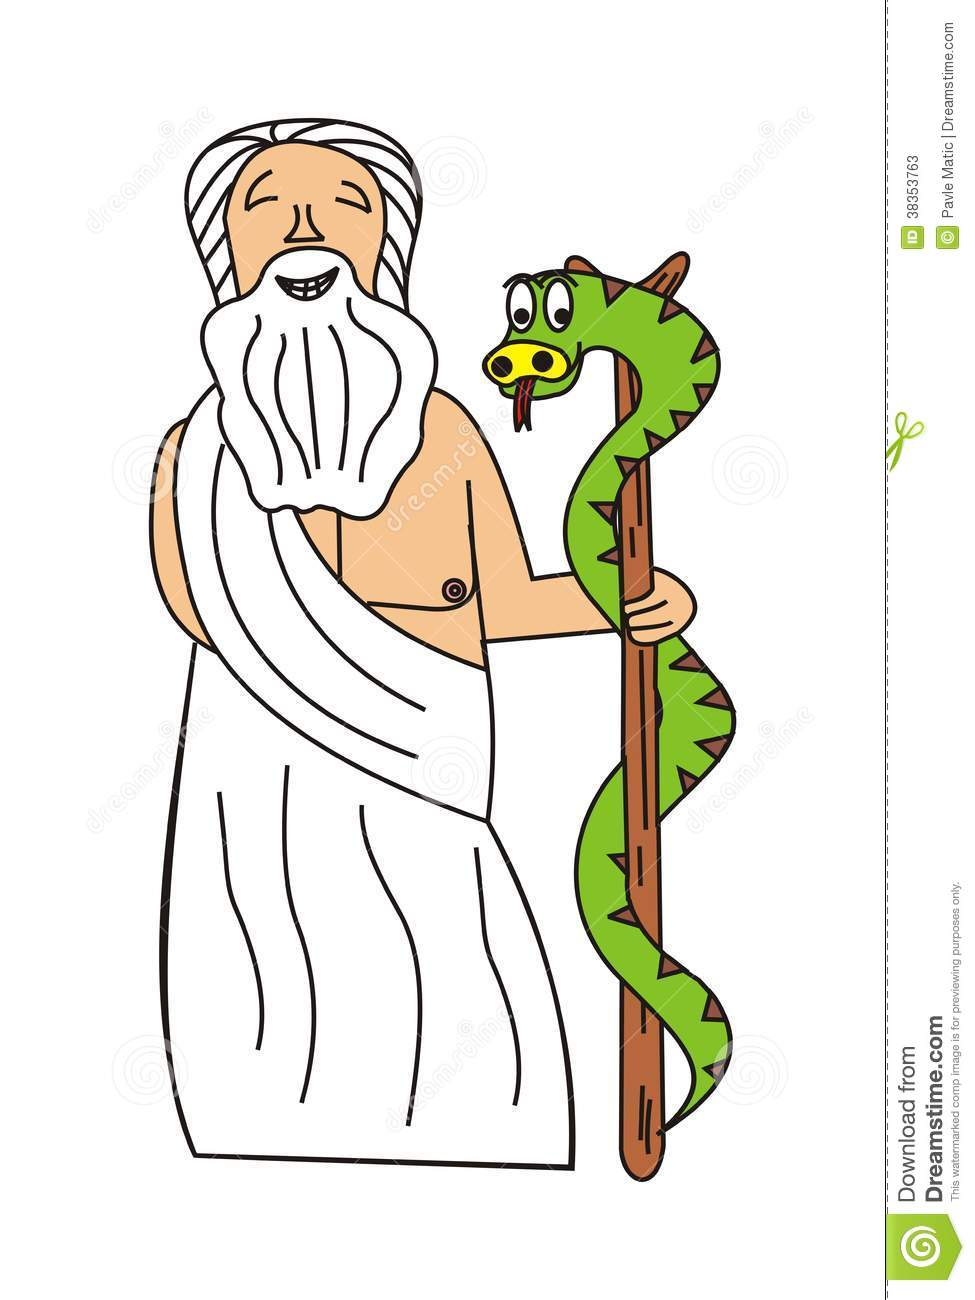 Asclepius and his rod stock vector. Illustration of ancient.